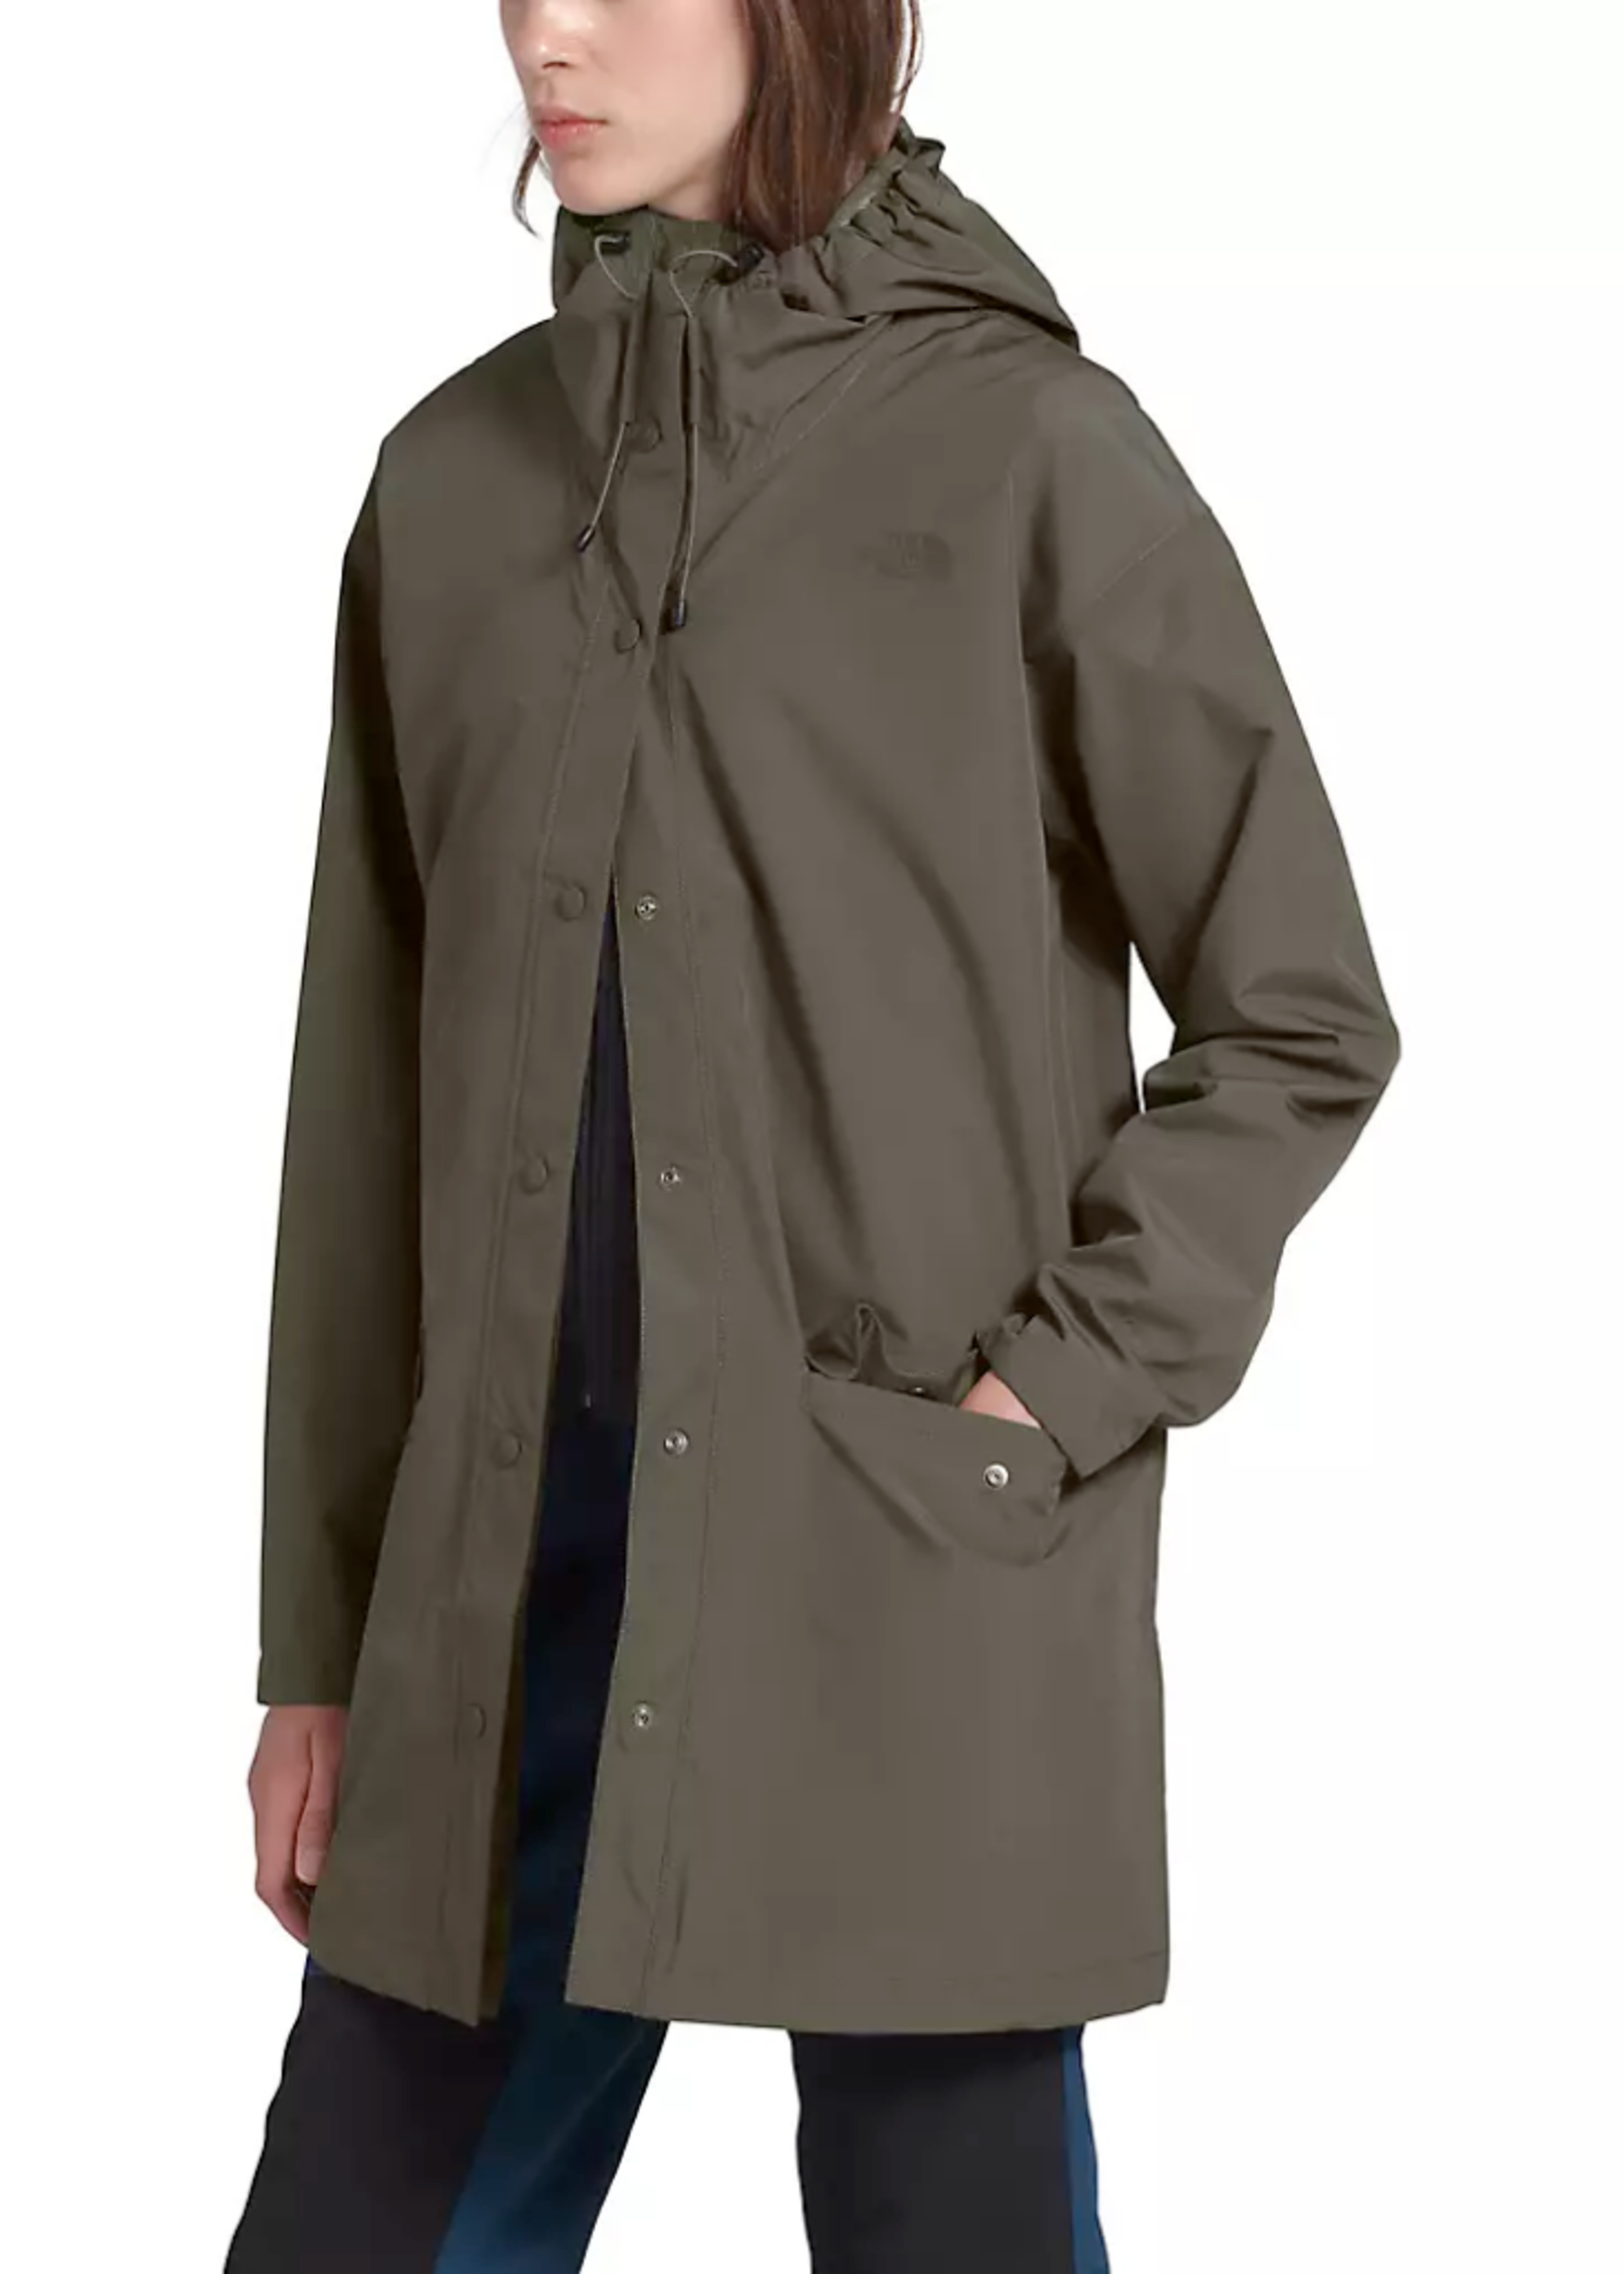 THE NORTH FACE S20 TNF WOODMONT JACKET